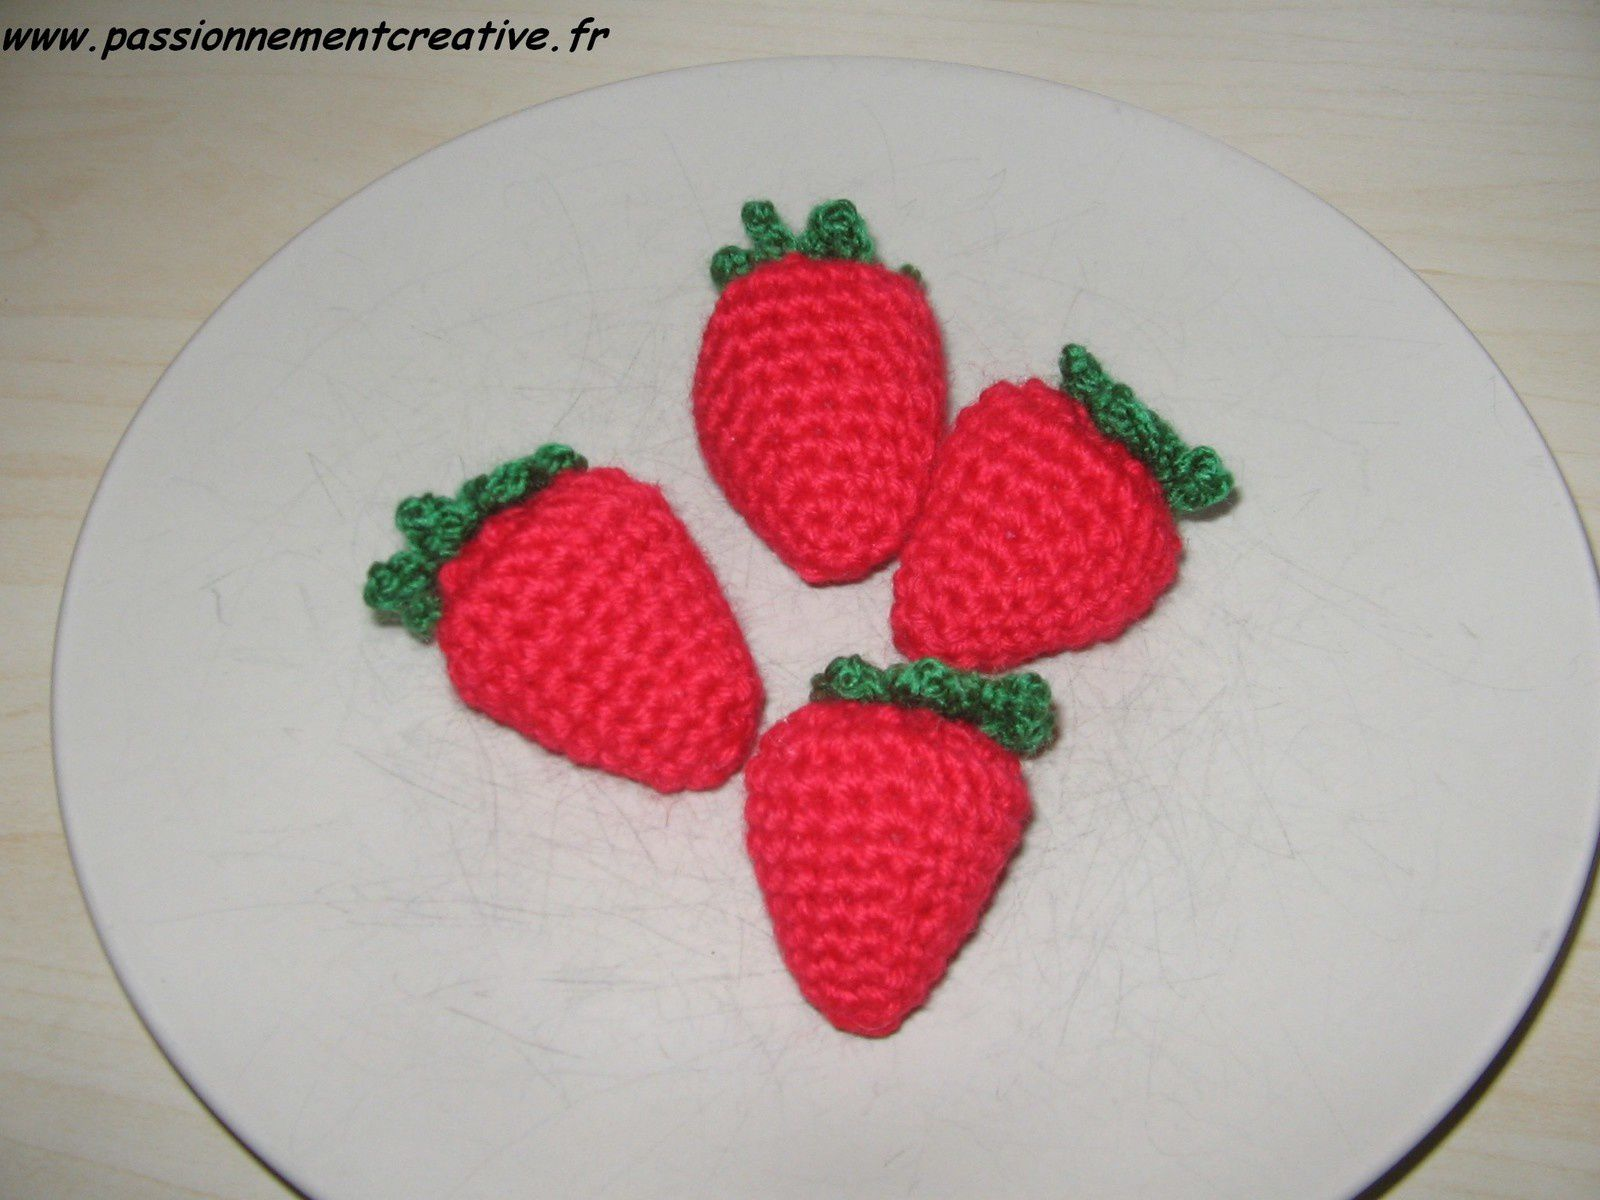 Des fruits au crochet